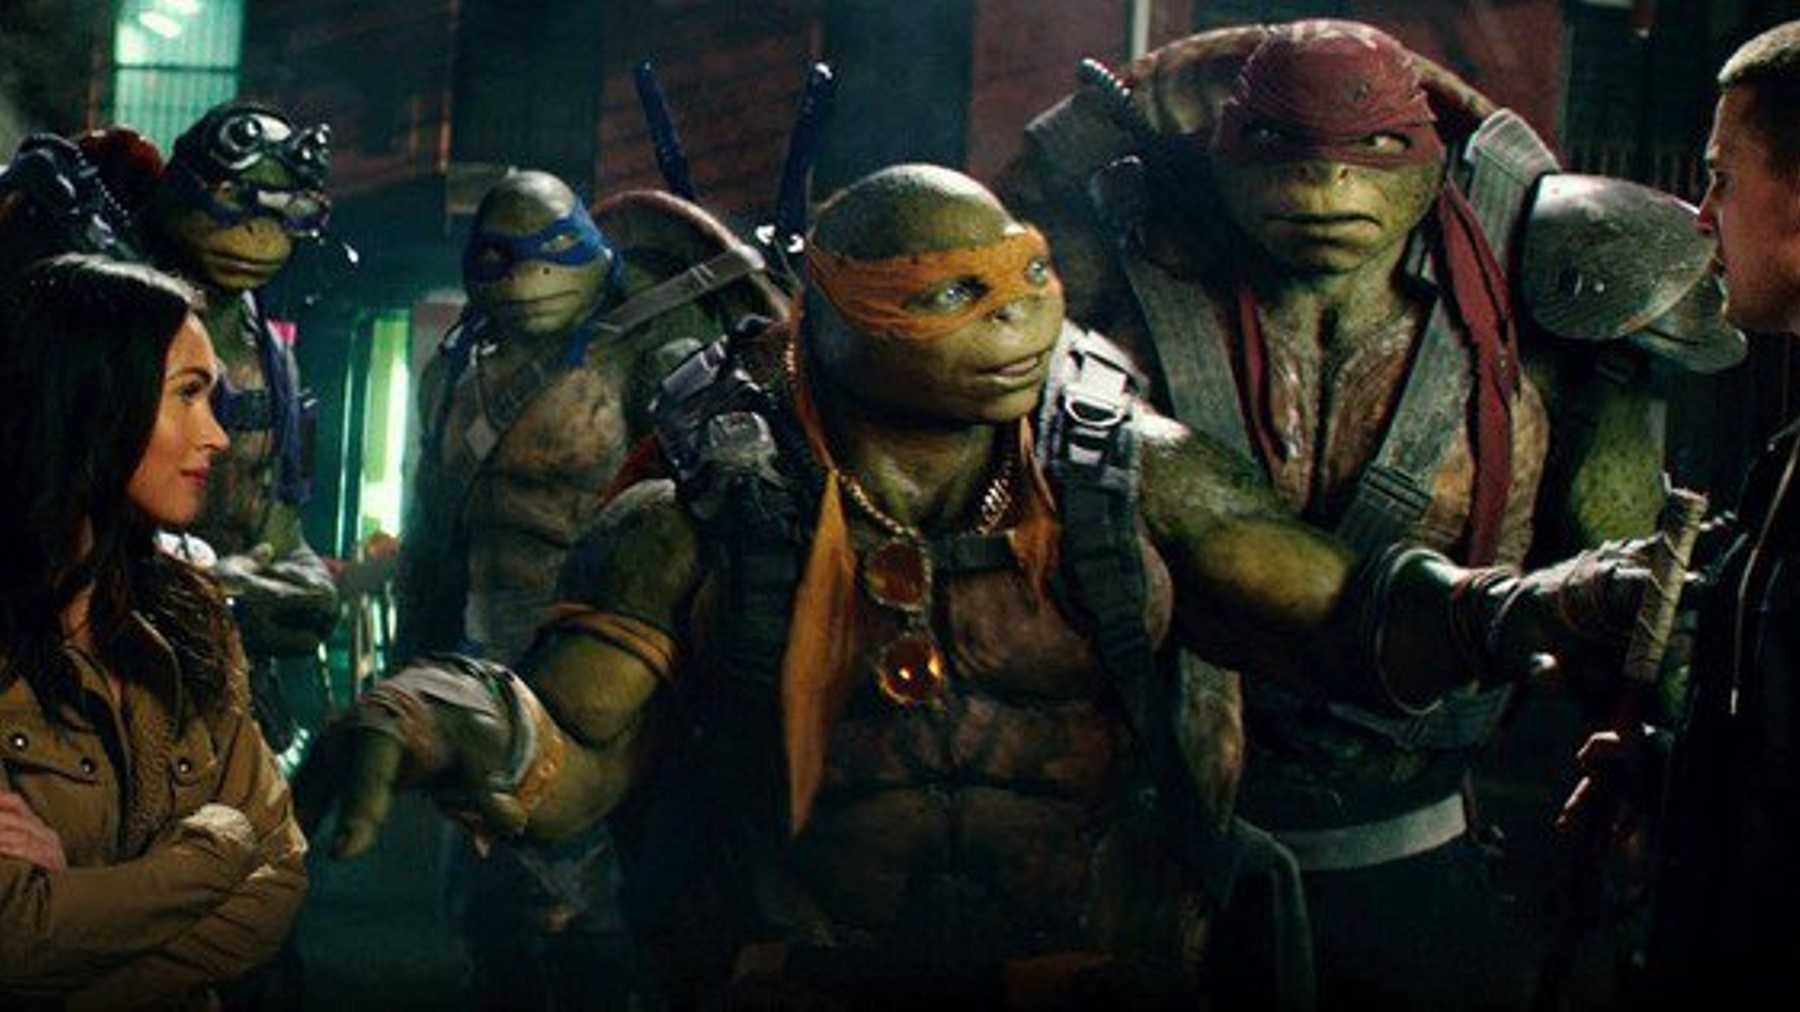 8. Teenage Mutant Ninja Turtles Out of the Shadows